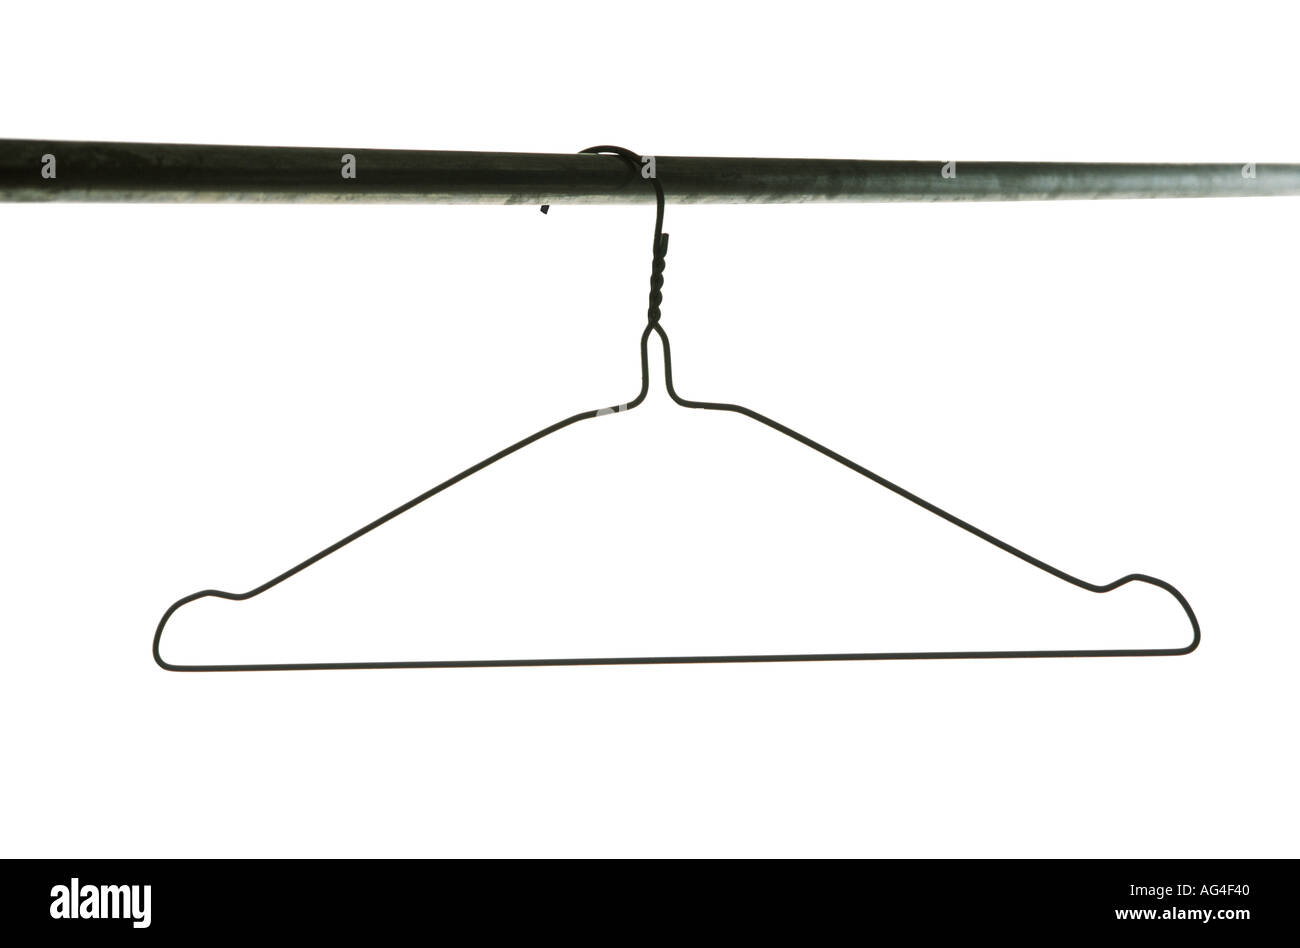 wire coat hanger against a white background Stock Photo: 1068863 - Alamy